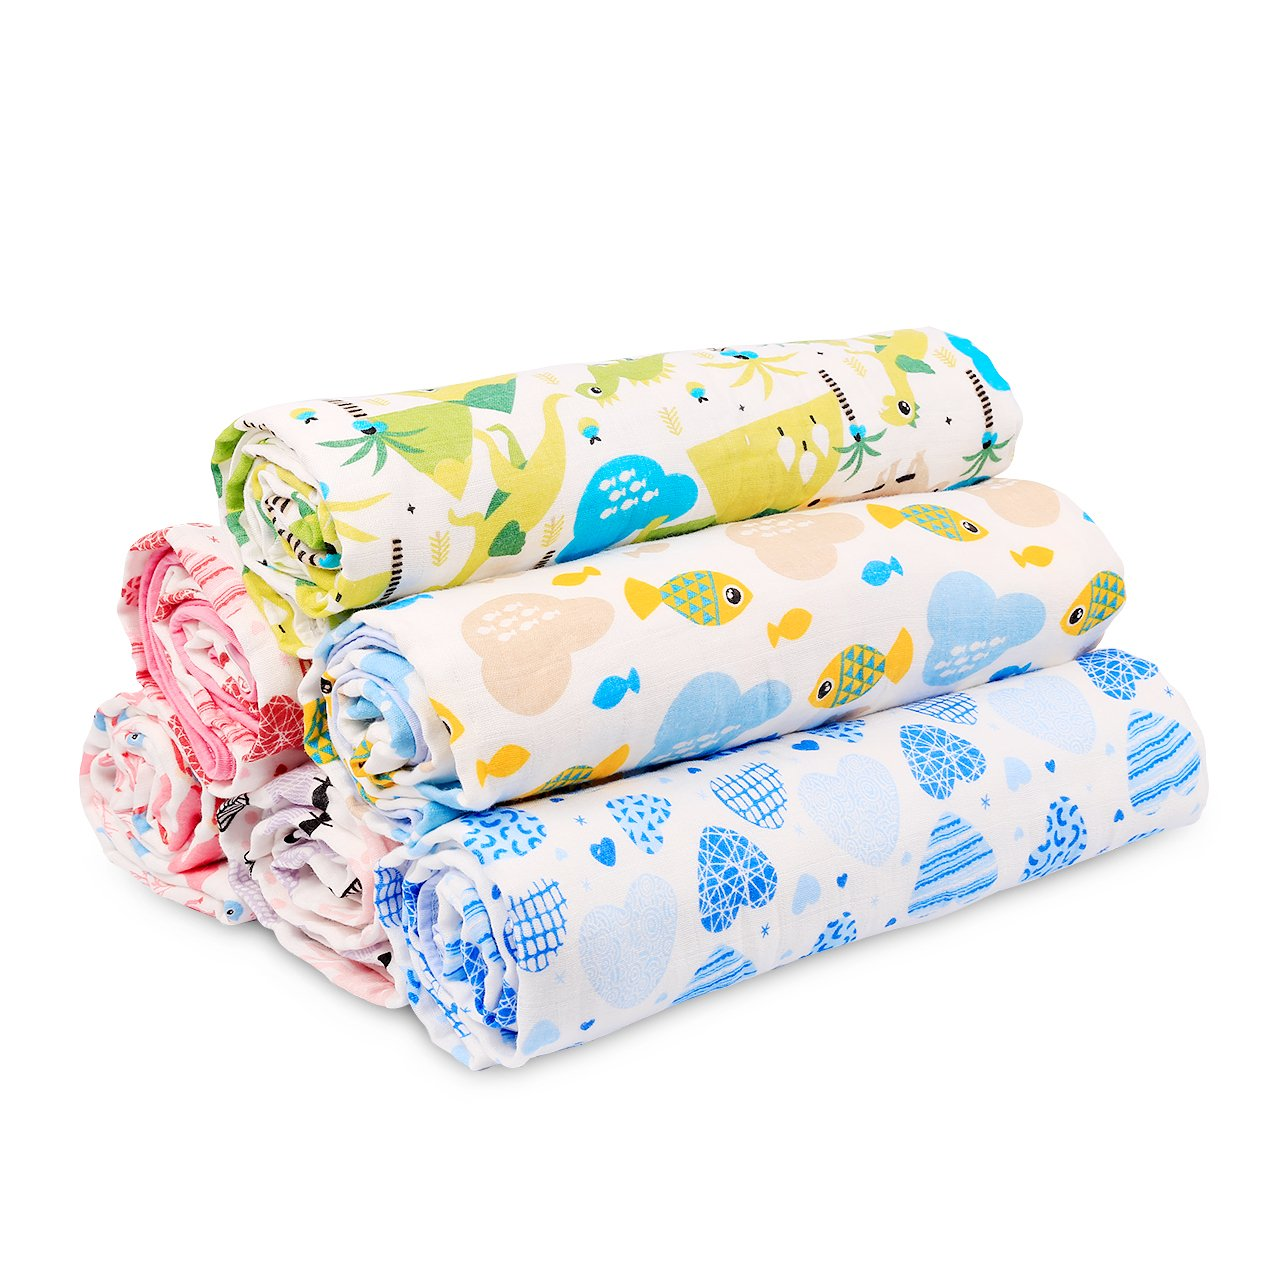 Soft & Cozy Two Layers Muslin Cotton Baby Swaddle Blanket, Burpy Clothes For Deep Sleep, 40 x 60 inches Stroller Blanket for Unisex Newborn (Fish)